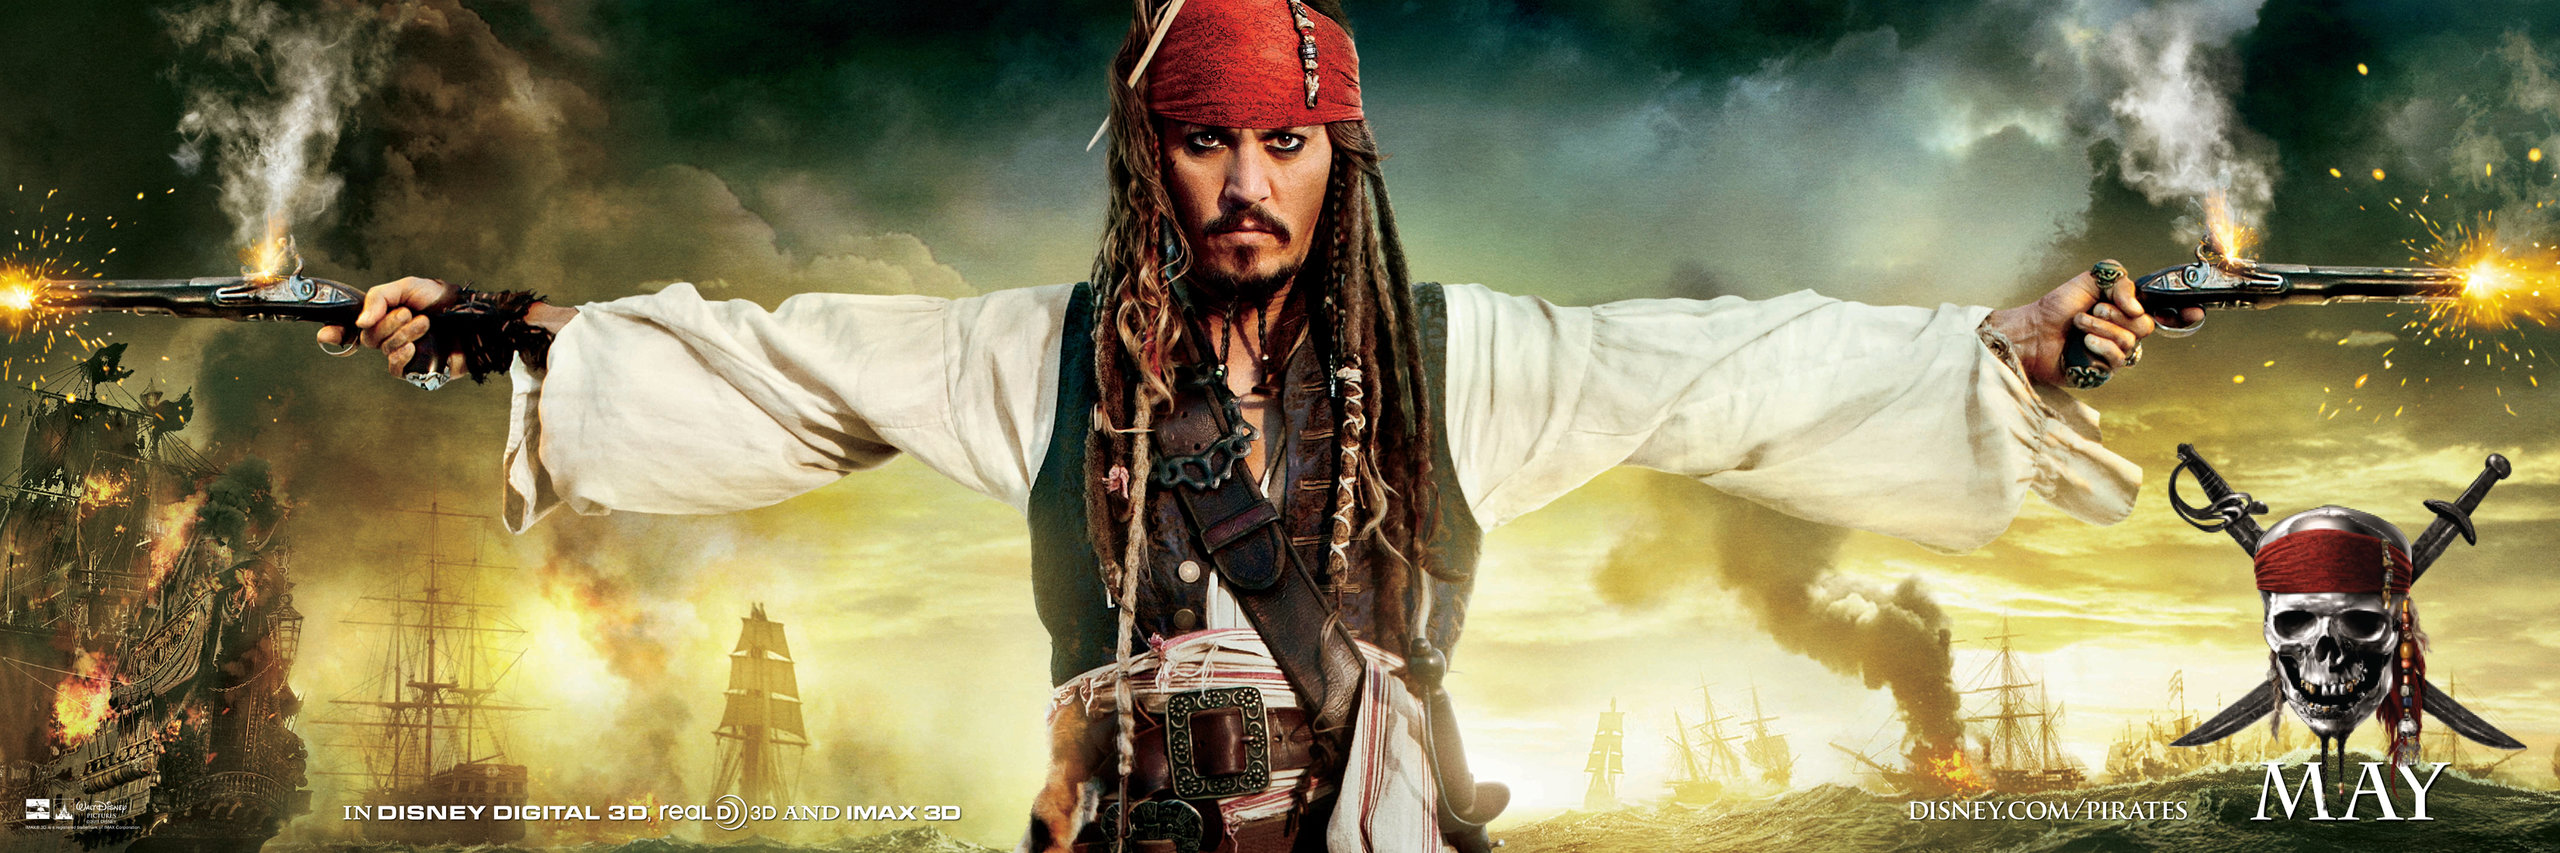 a review of the movie pirates of the caribbean Pirates of the caribbean 5 movie review today beyond the trailer's reaction & review dead men tell no tales 2017 will turner.